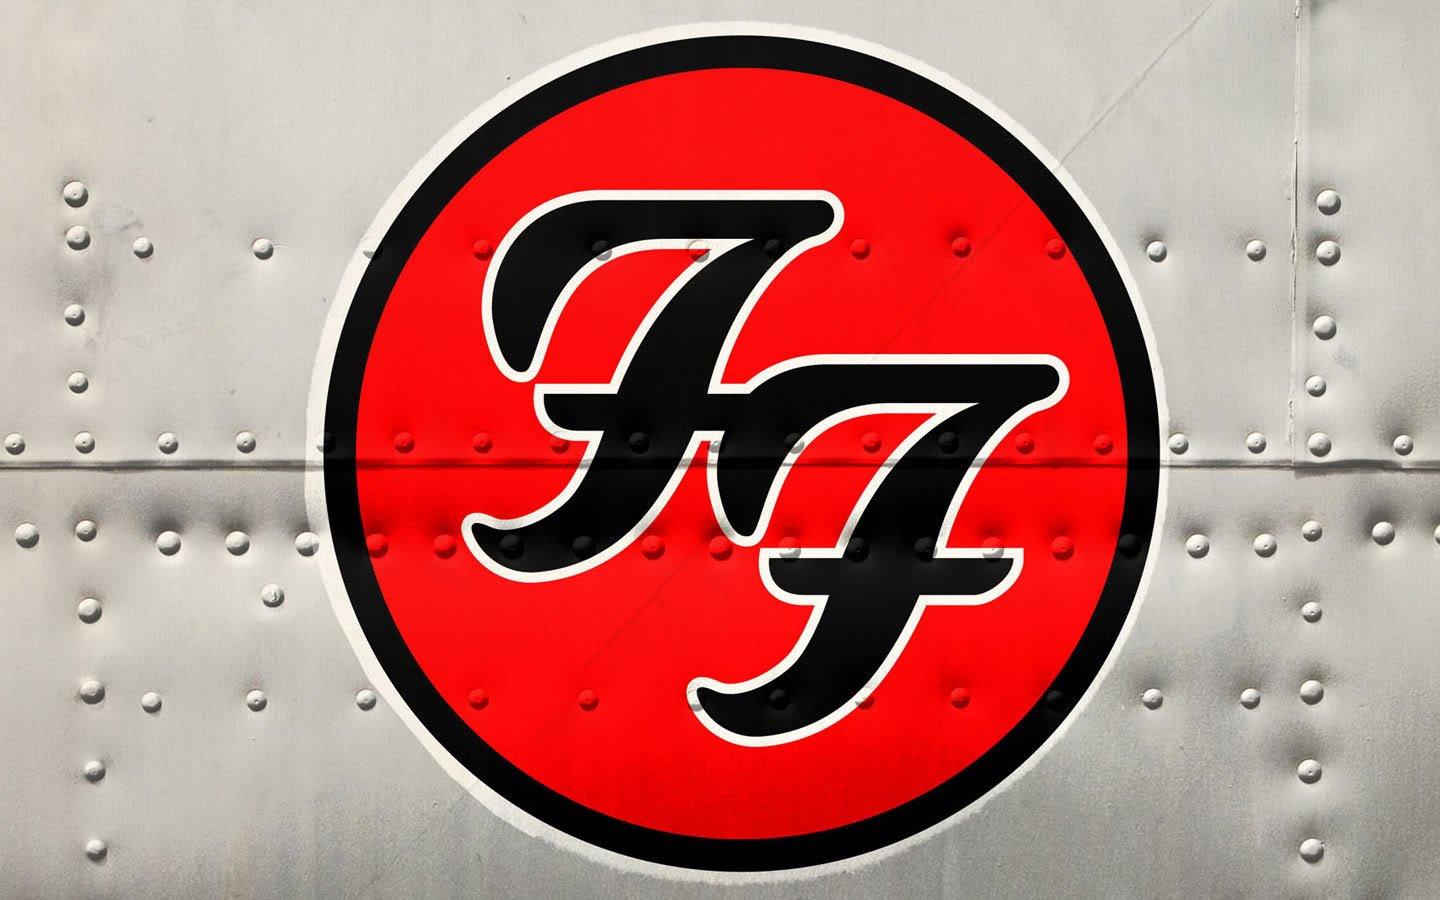 Foo Fighters Images 261494 HD Wallpaper And Background Photos